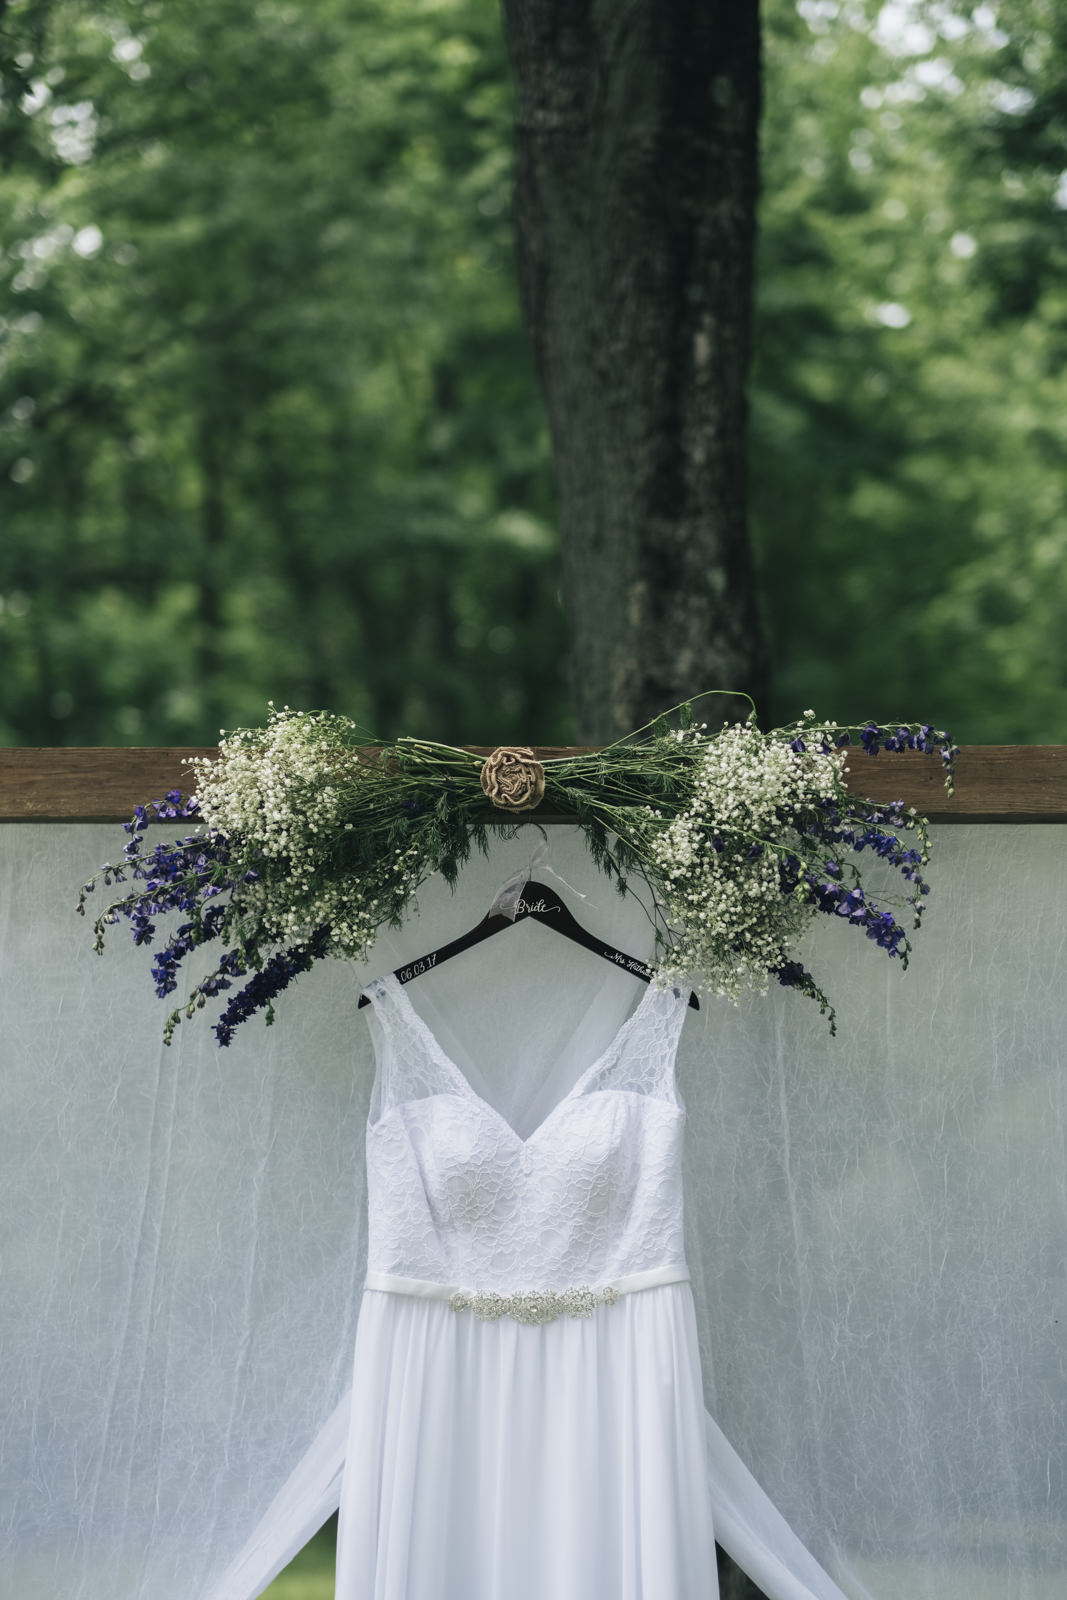 Wedding dress with lavender and baby's breath details.